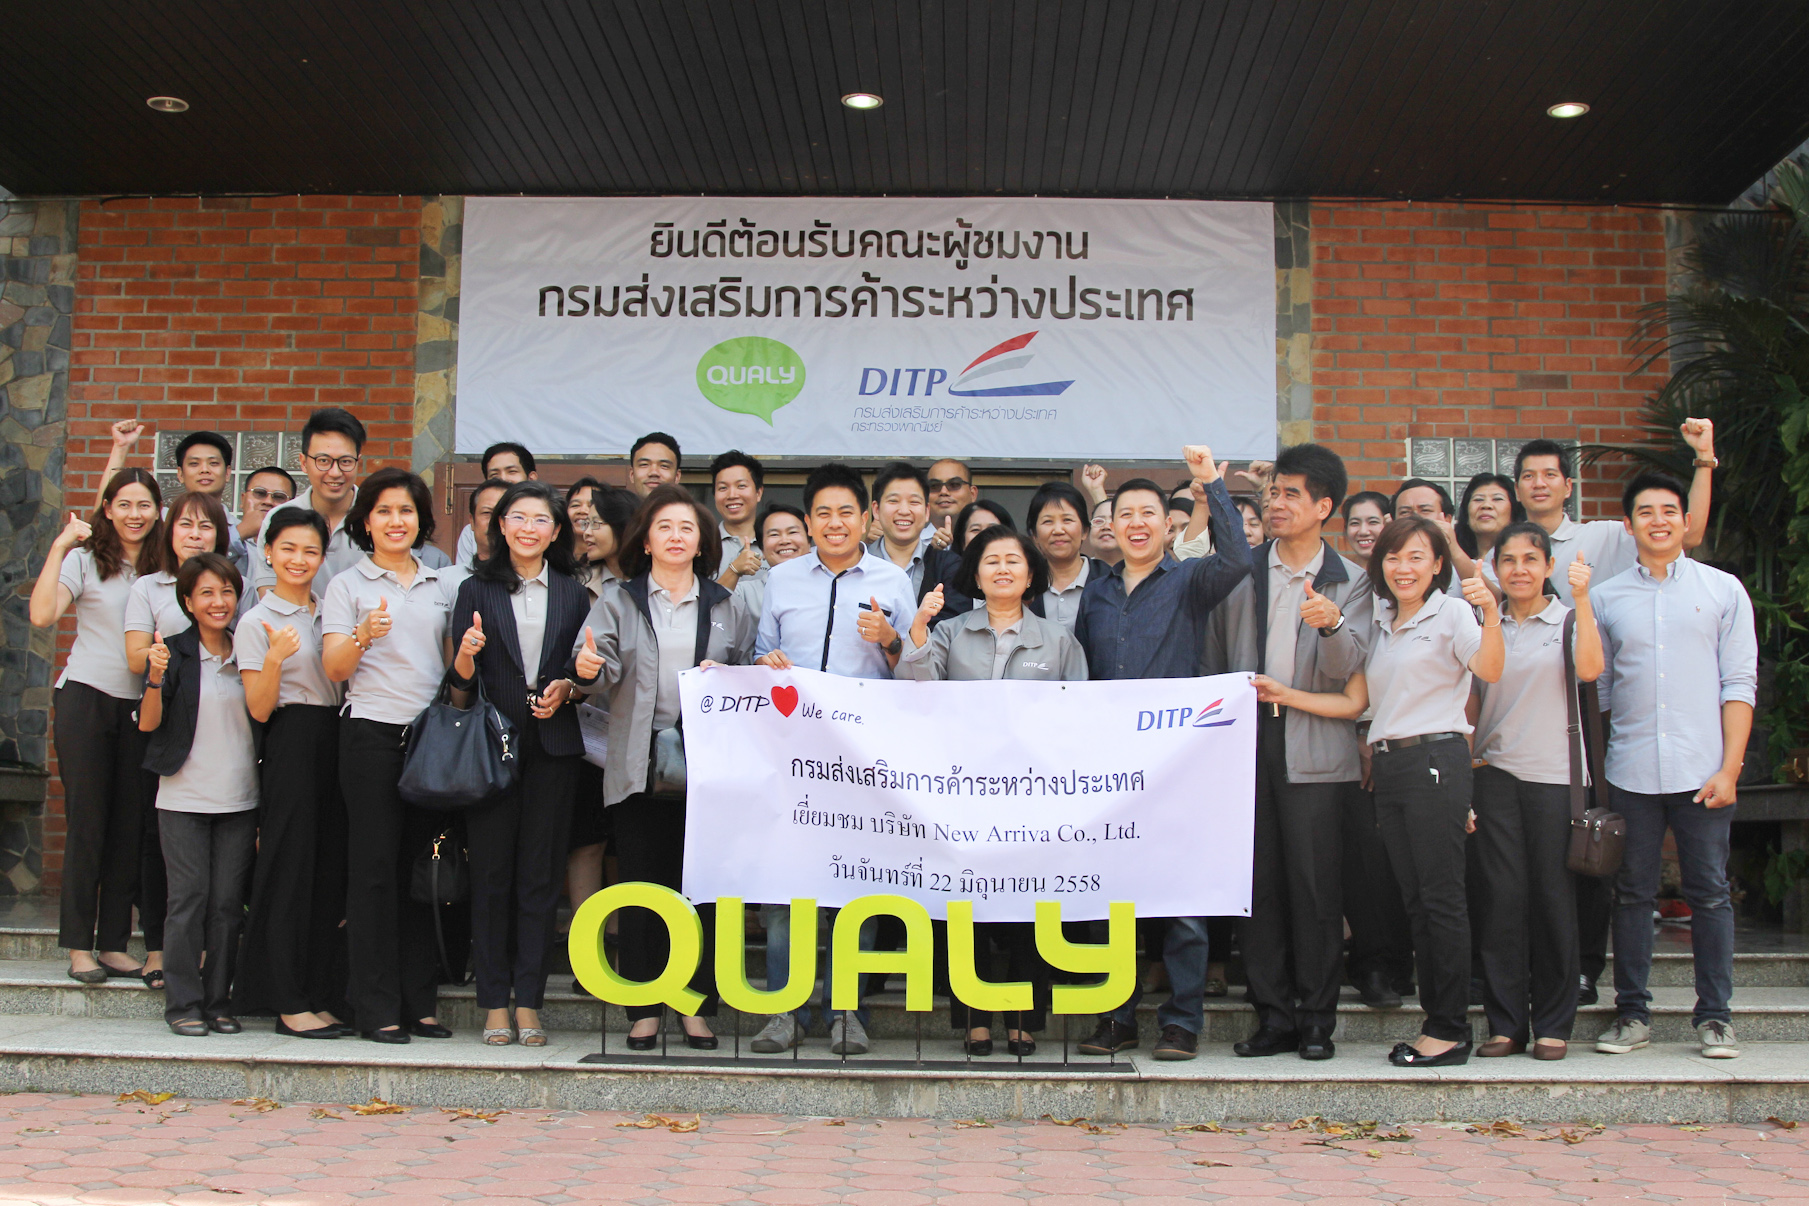 Thank you Department of Export promotion (DITP) for coming to visit our Qualy factory in Ayuthya on June, 22 2015.